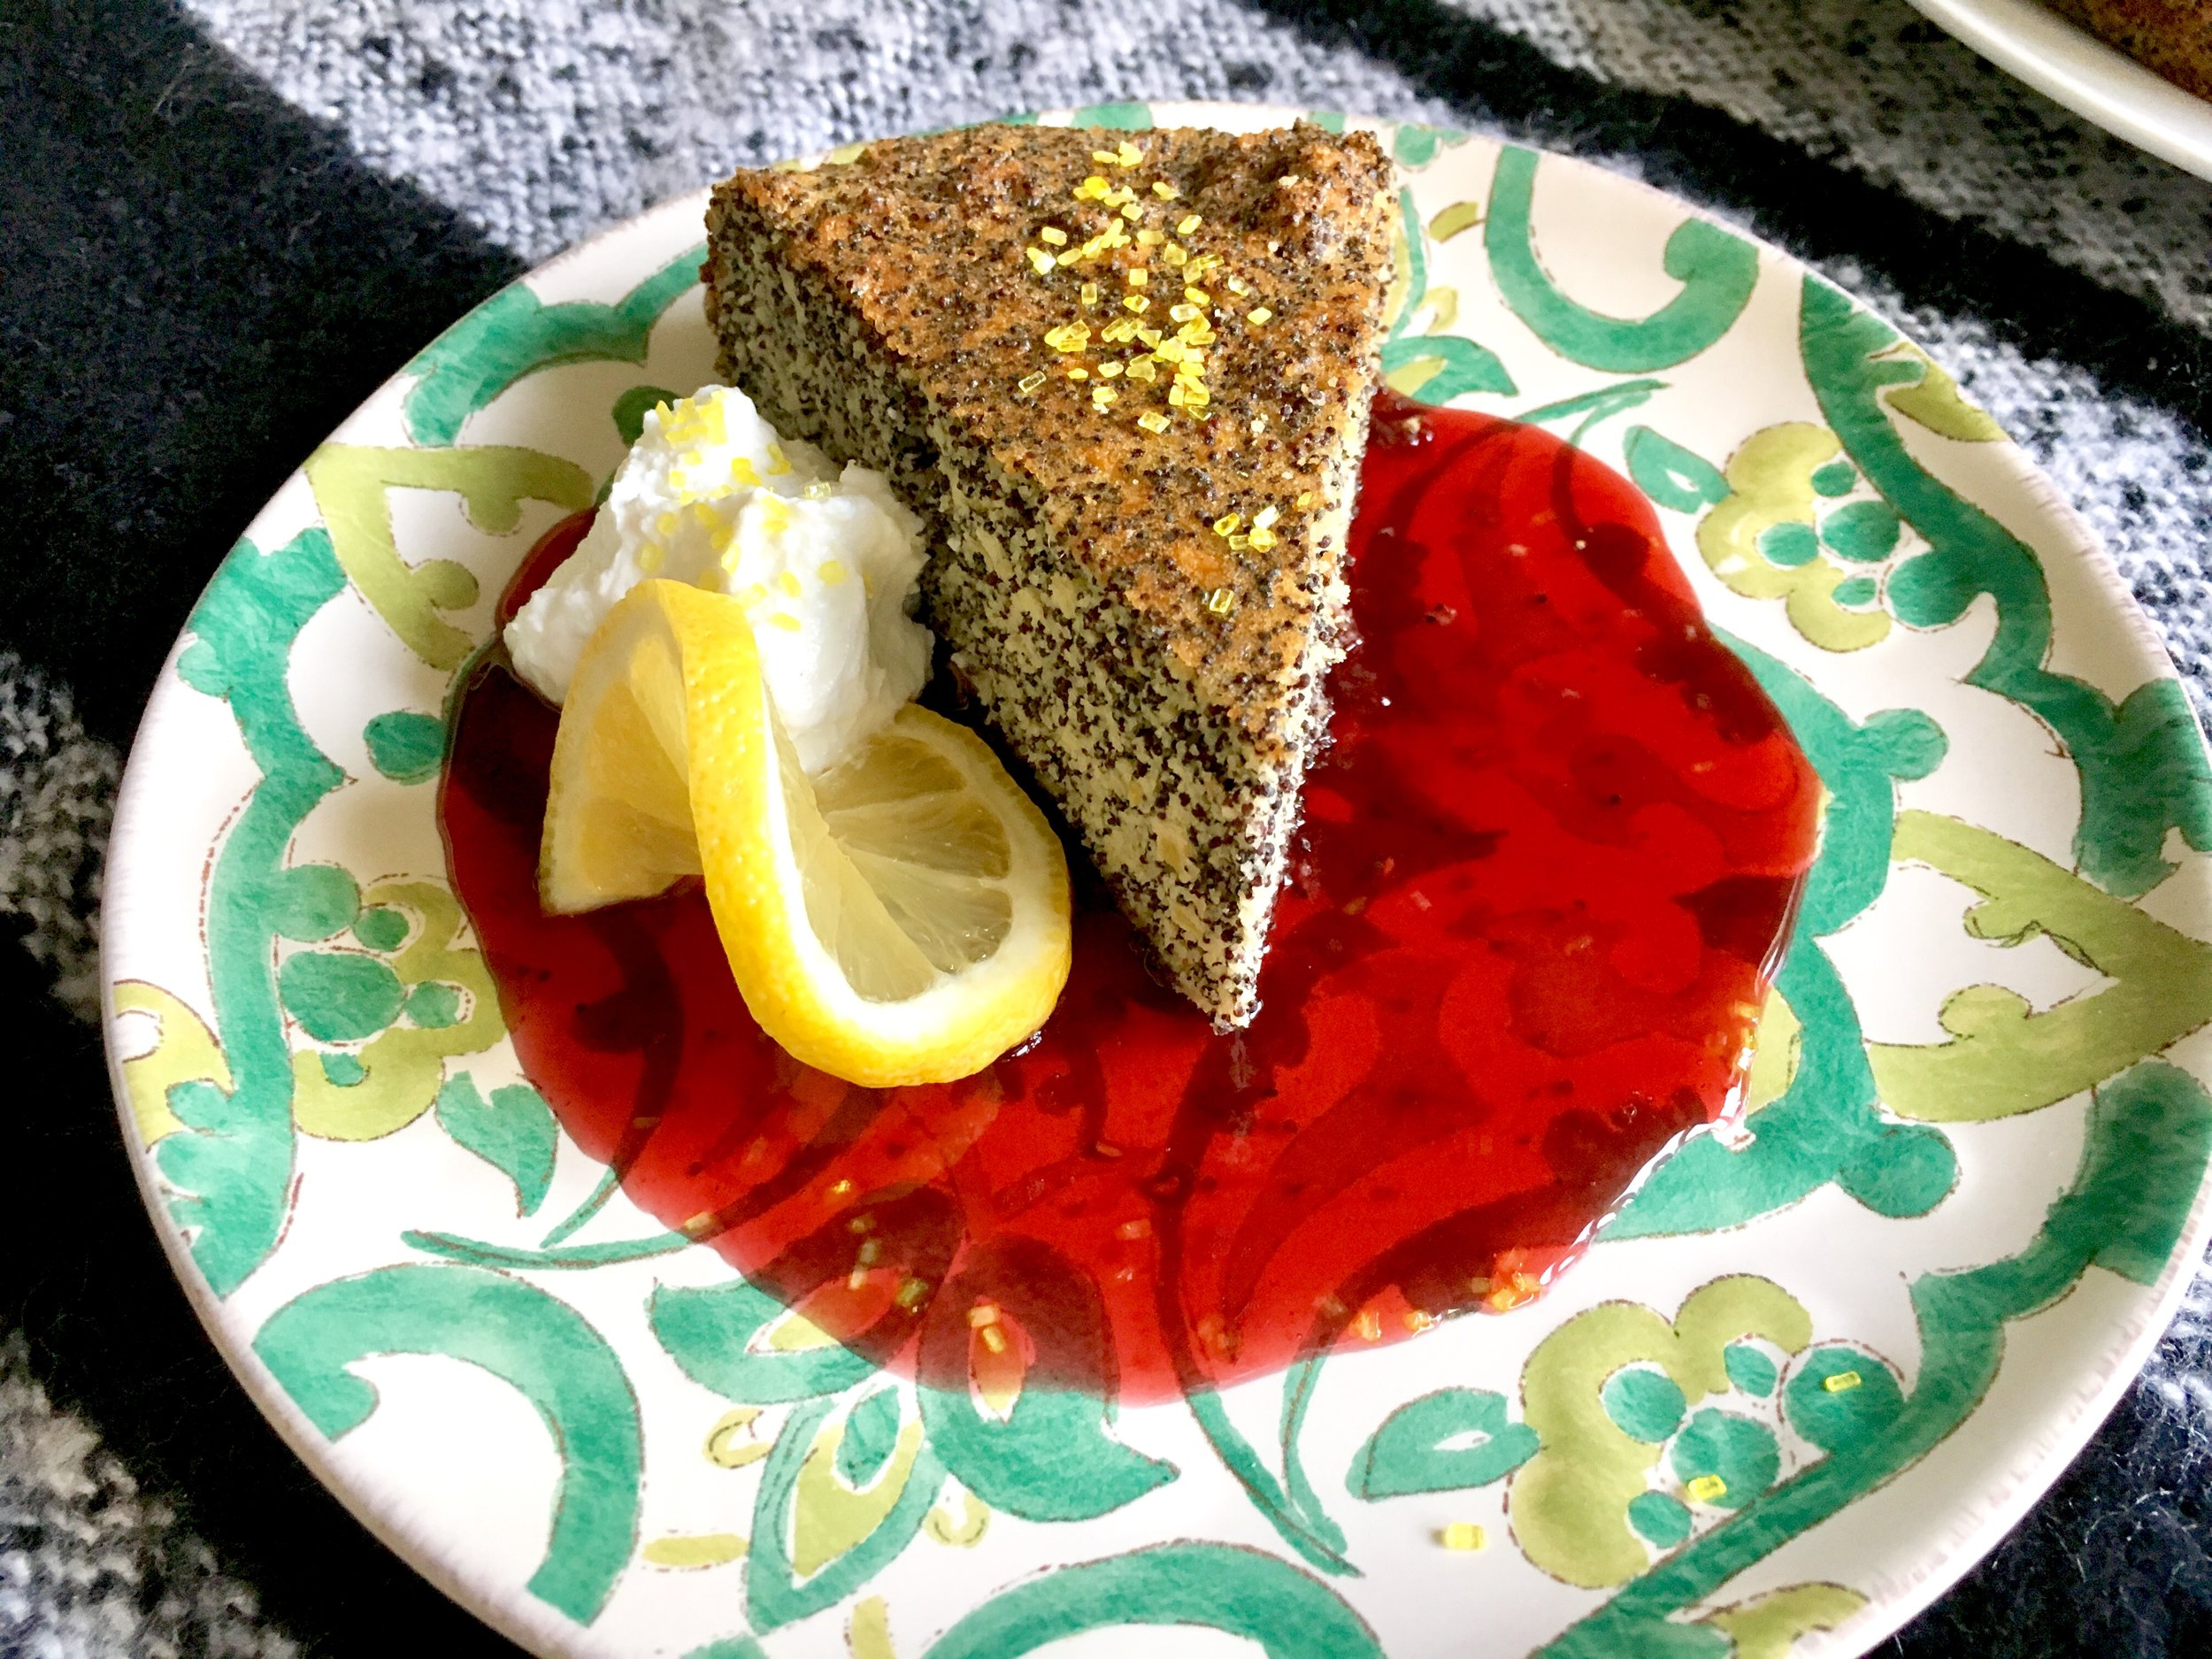 Rustic Italian flourless lemon-almond-poppyseed cake, four berry sauce, lemon sugar whipped cream